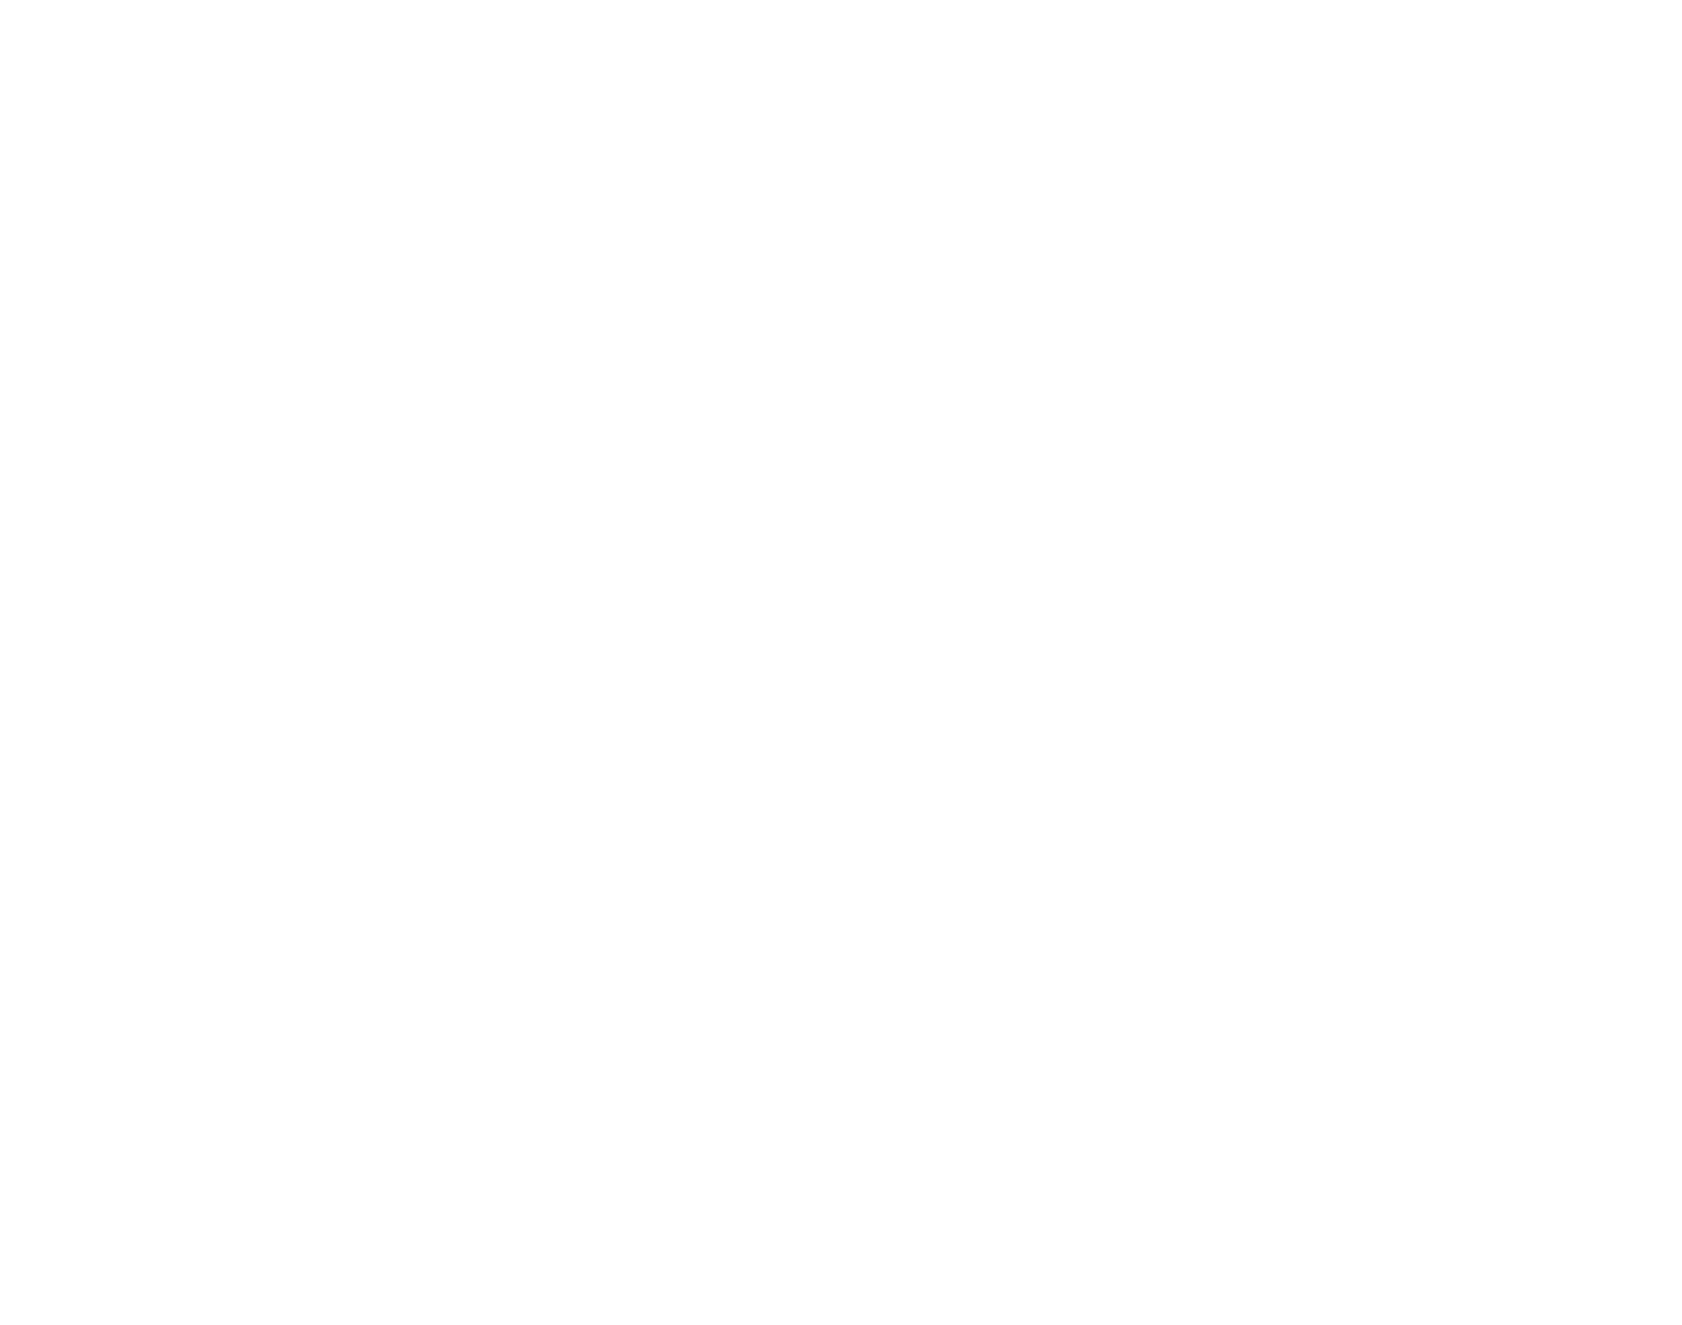 The Clean Air Day logo